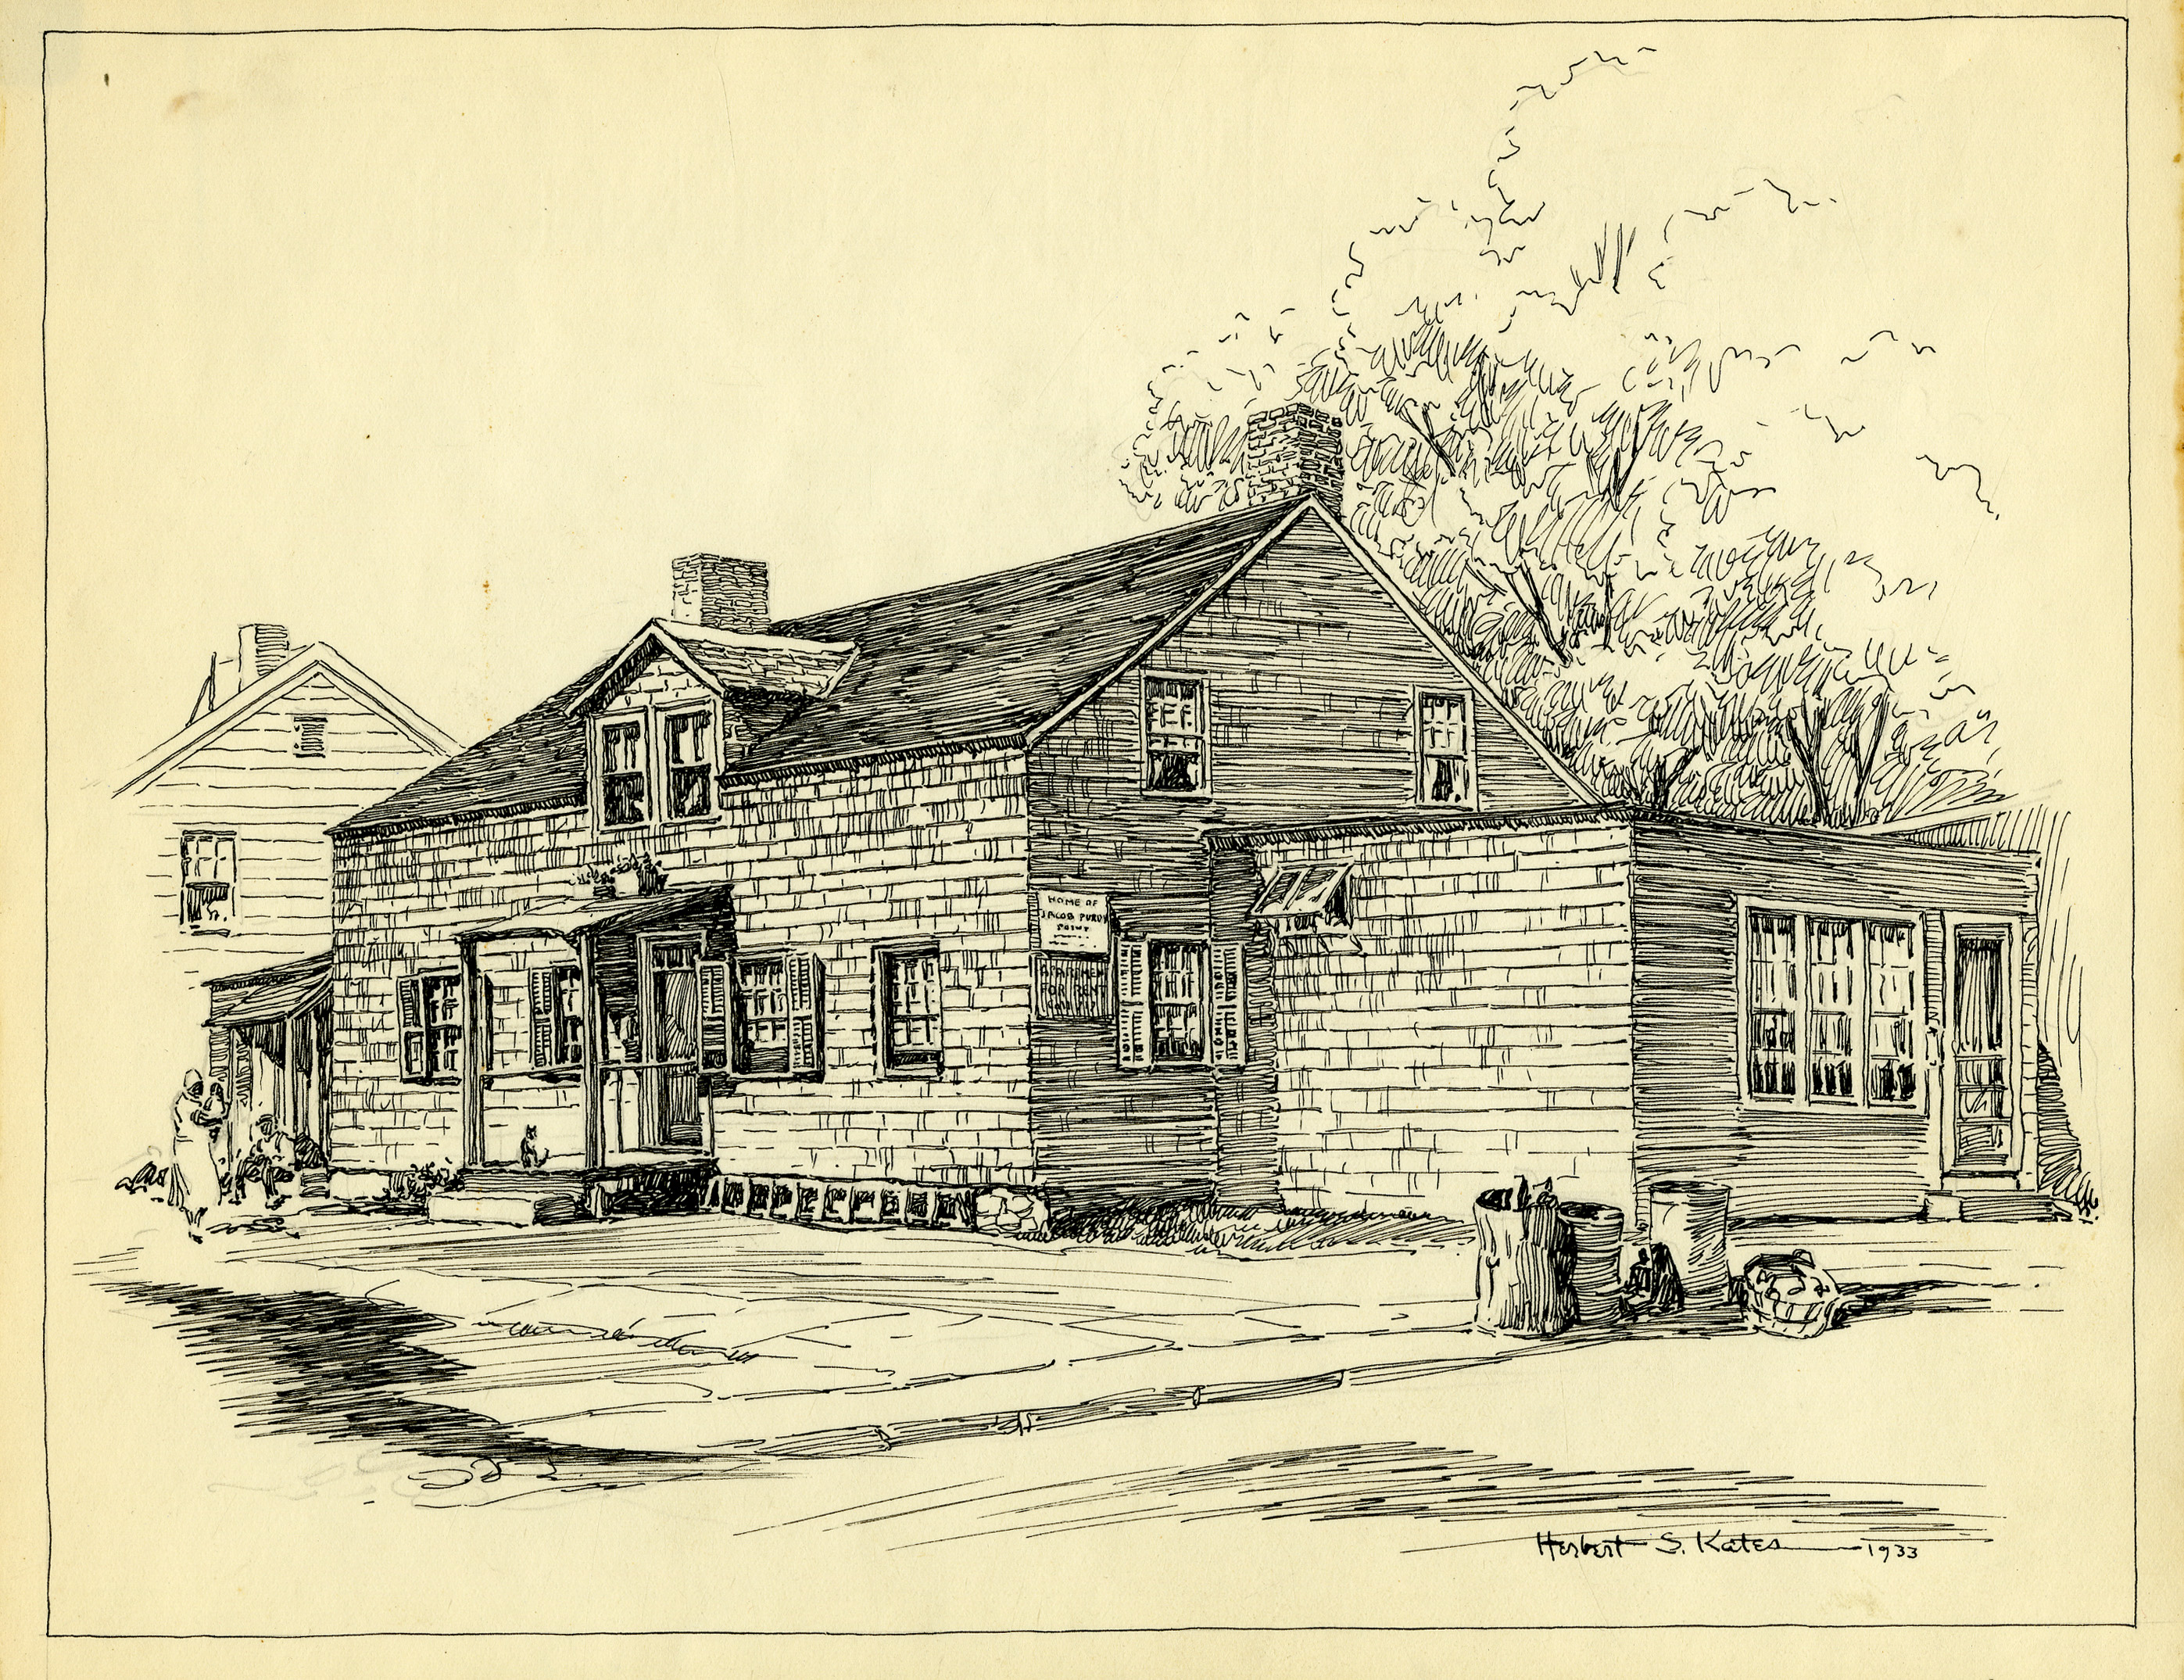 Early Depiction of the Jacob Purdy House